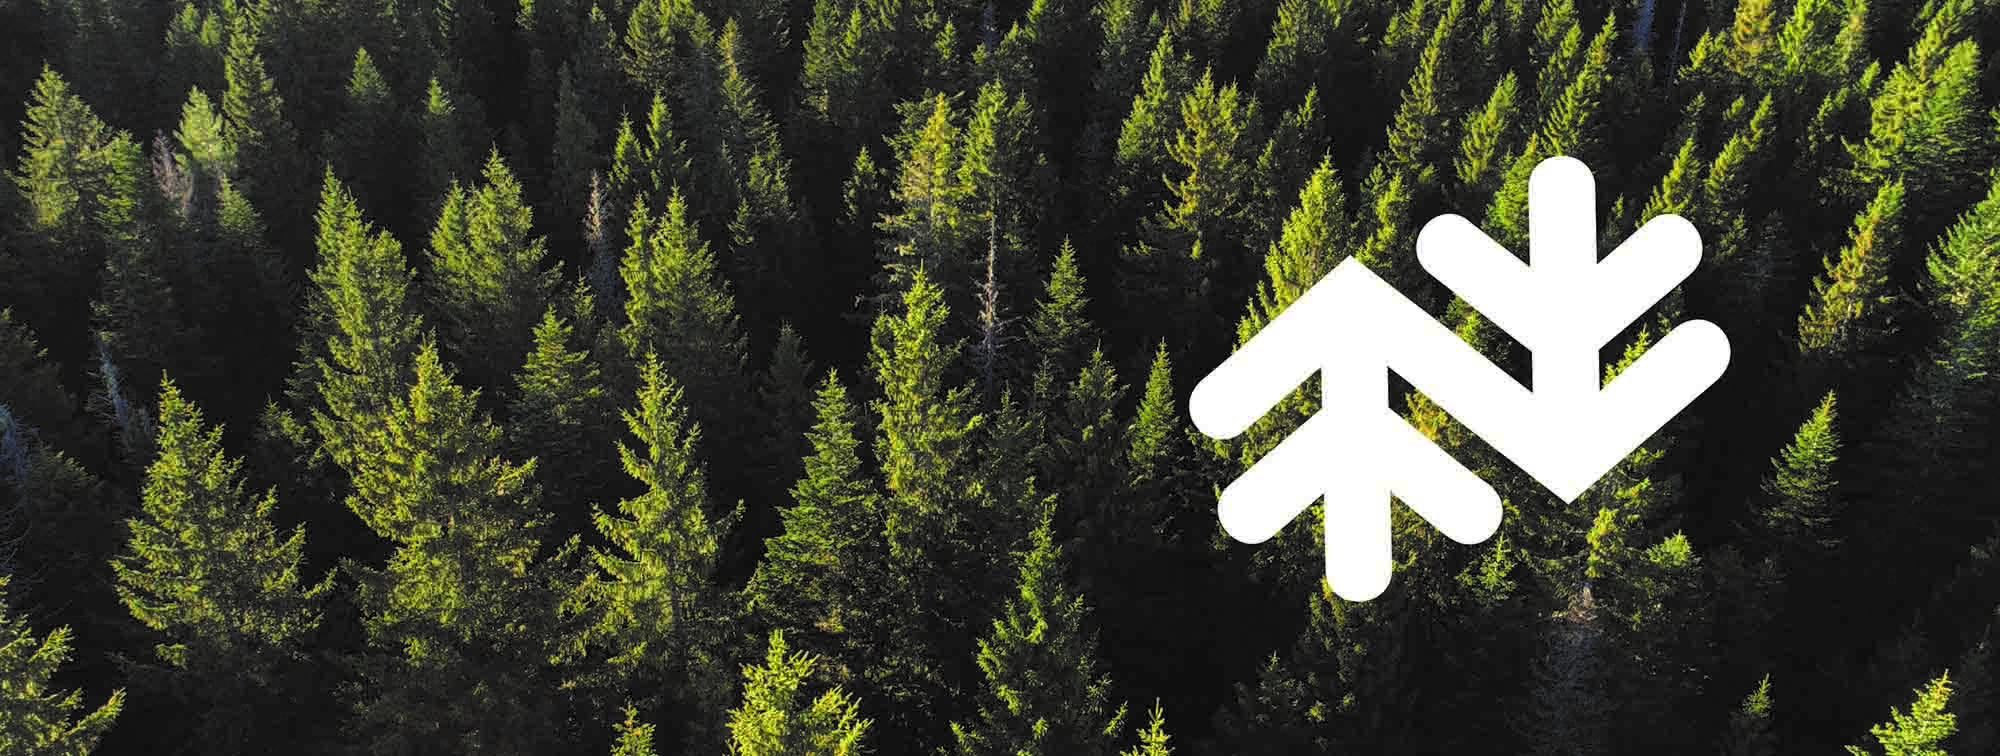 norske skog white logo in tree top background